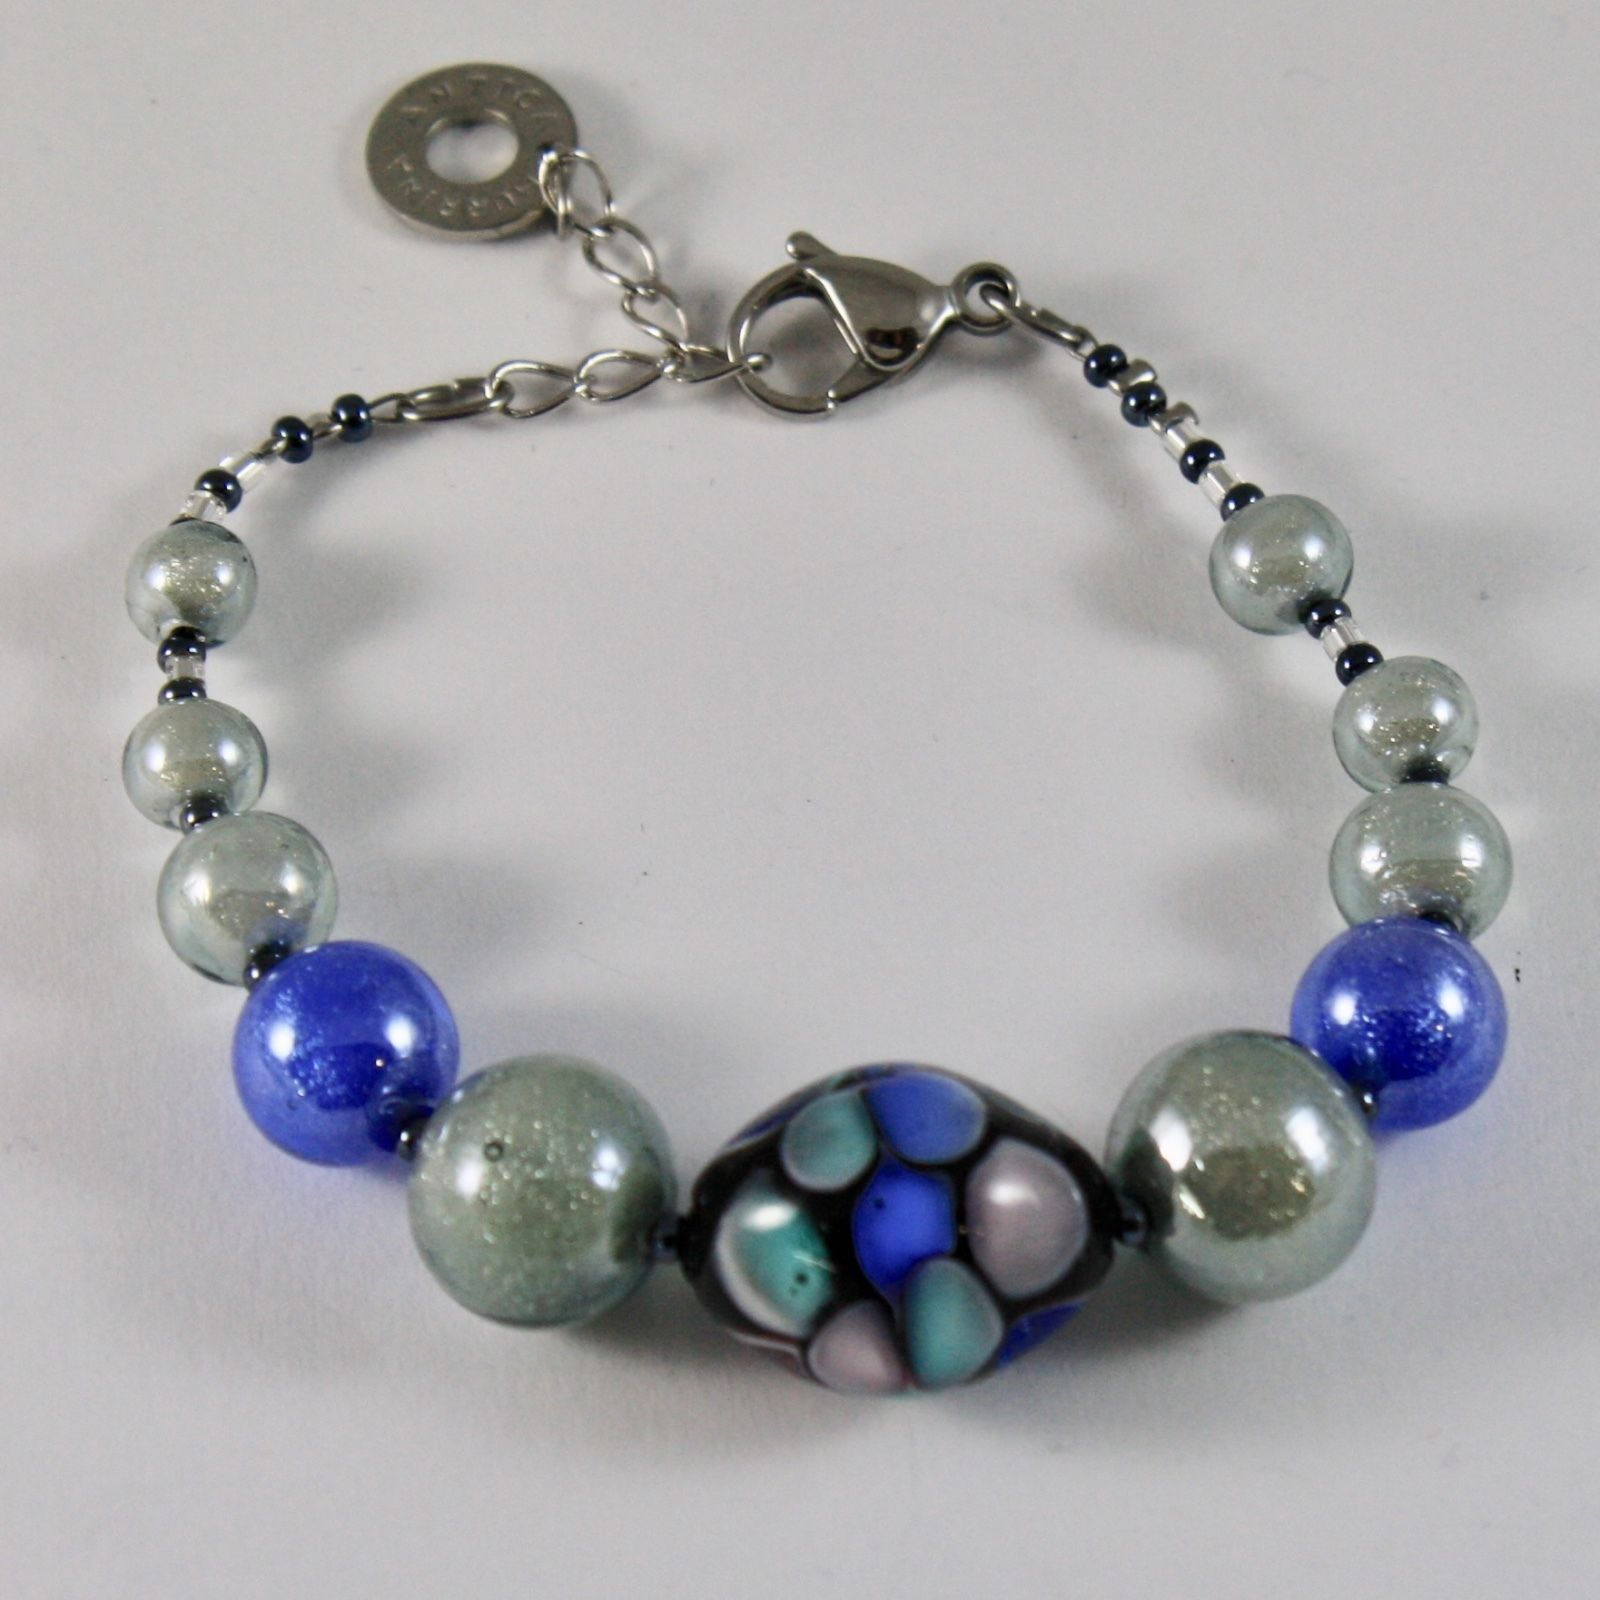 ANTICA MURRINA VENEZIA BRACELET WITH MURANO GLASS BEADS 7.5 INCHES LONG, BLUE